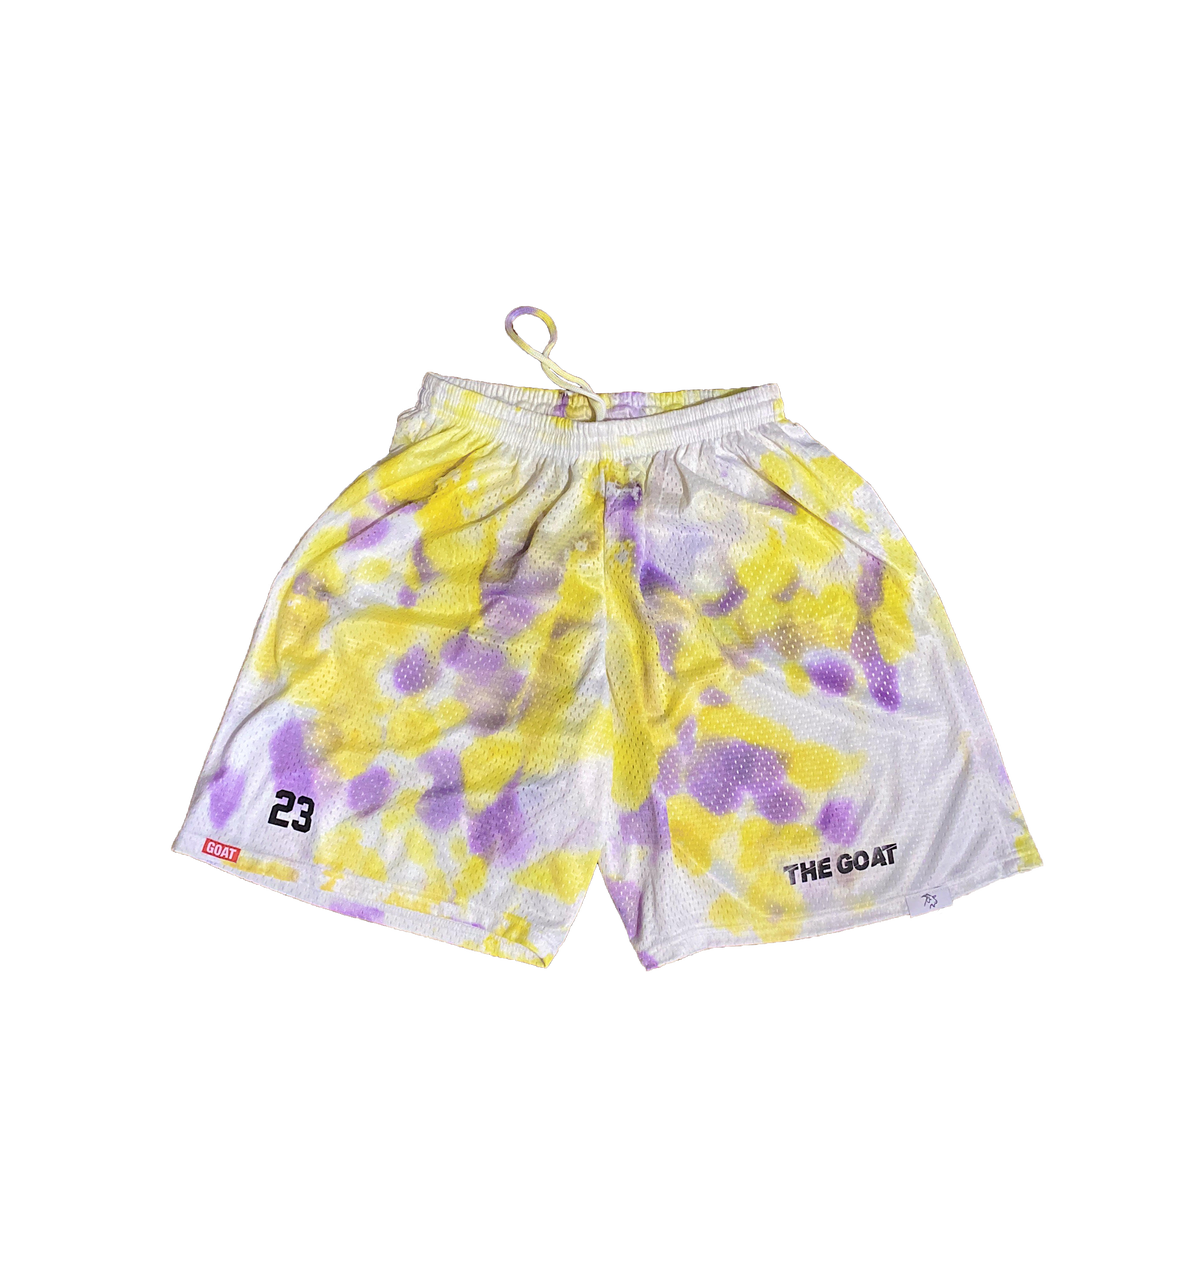 LeBron Lakers 1 of 1 Greatest Of All Time Shorts